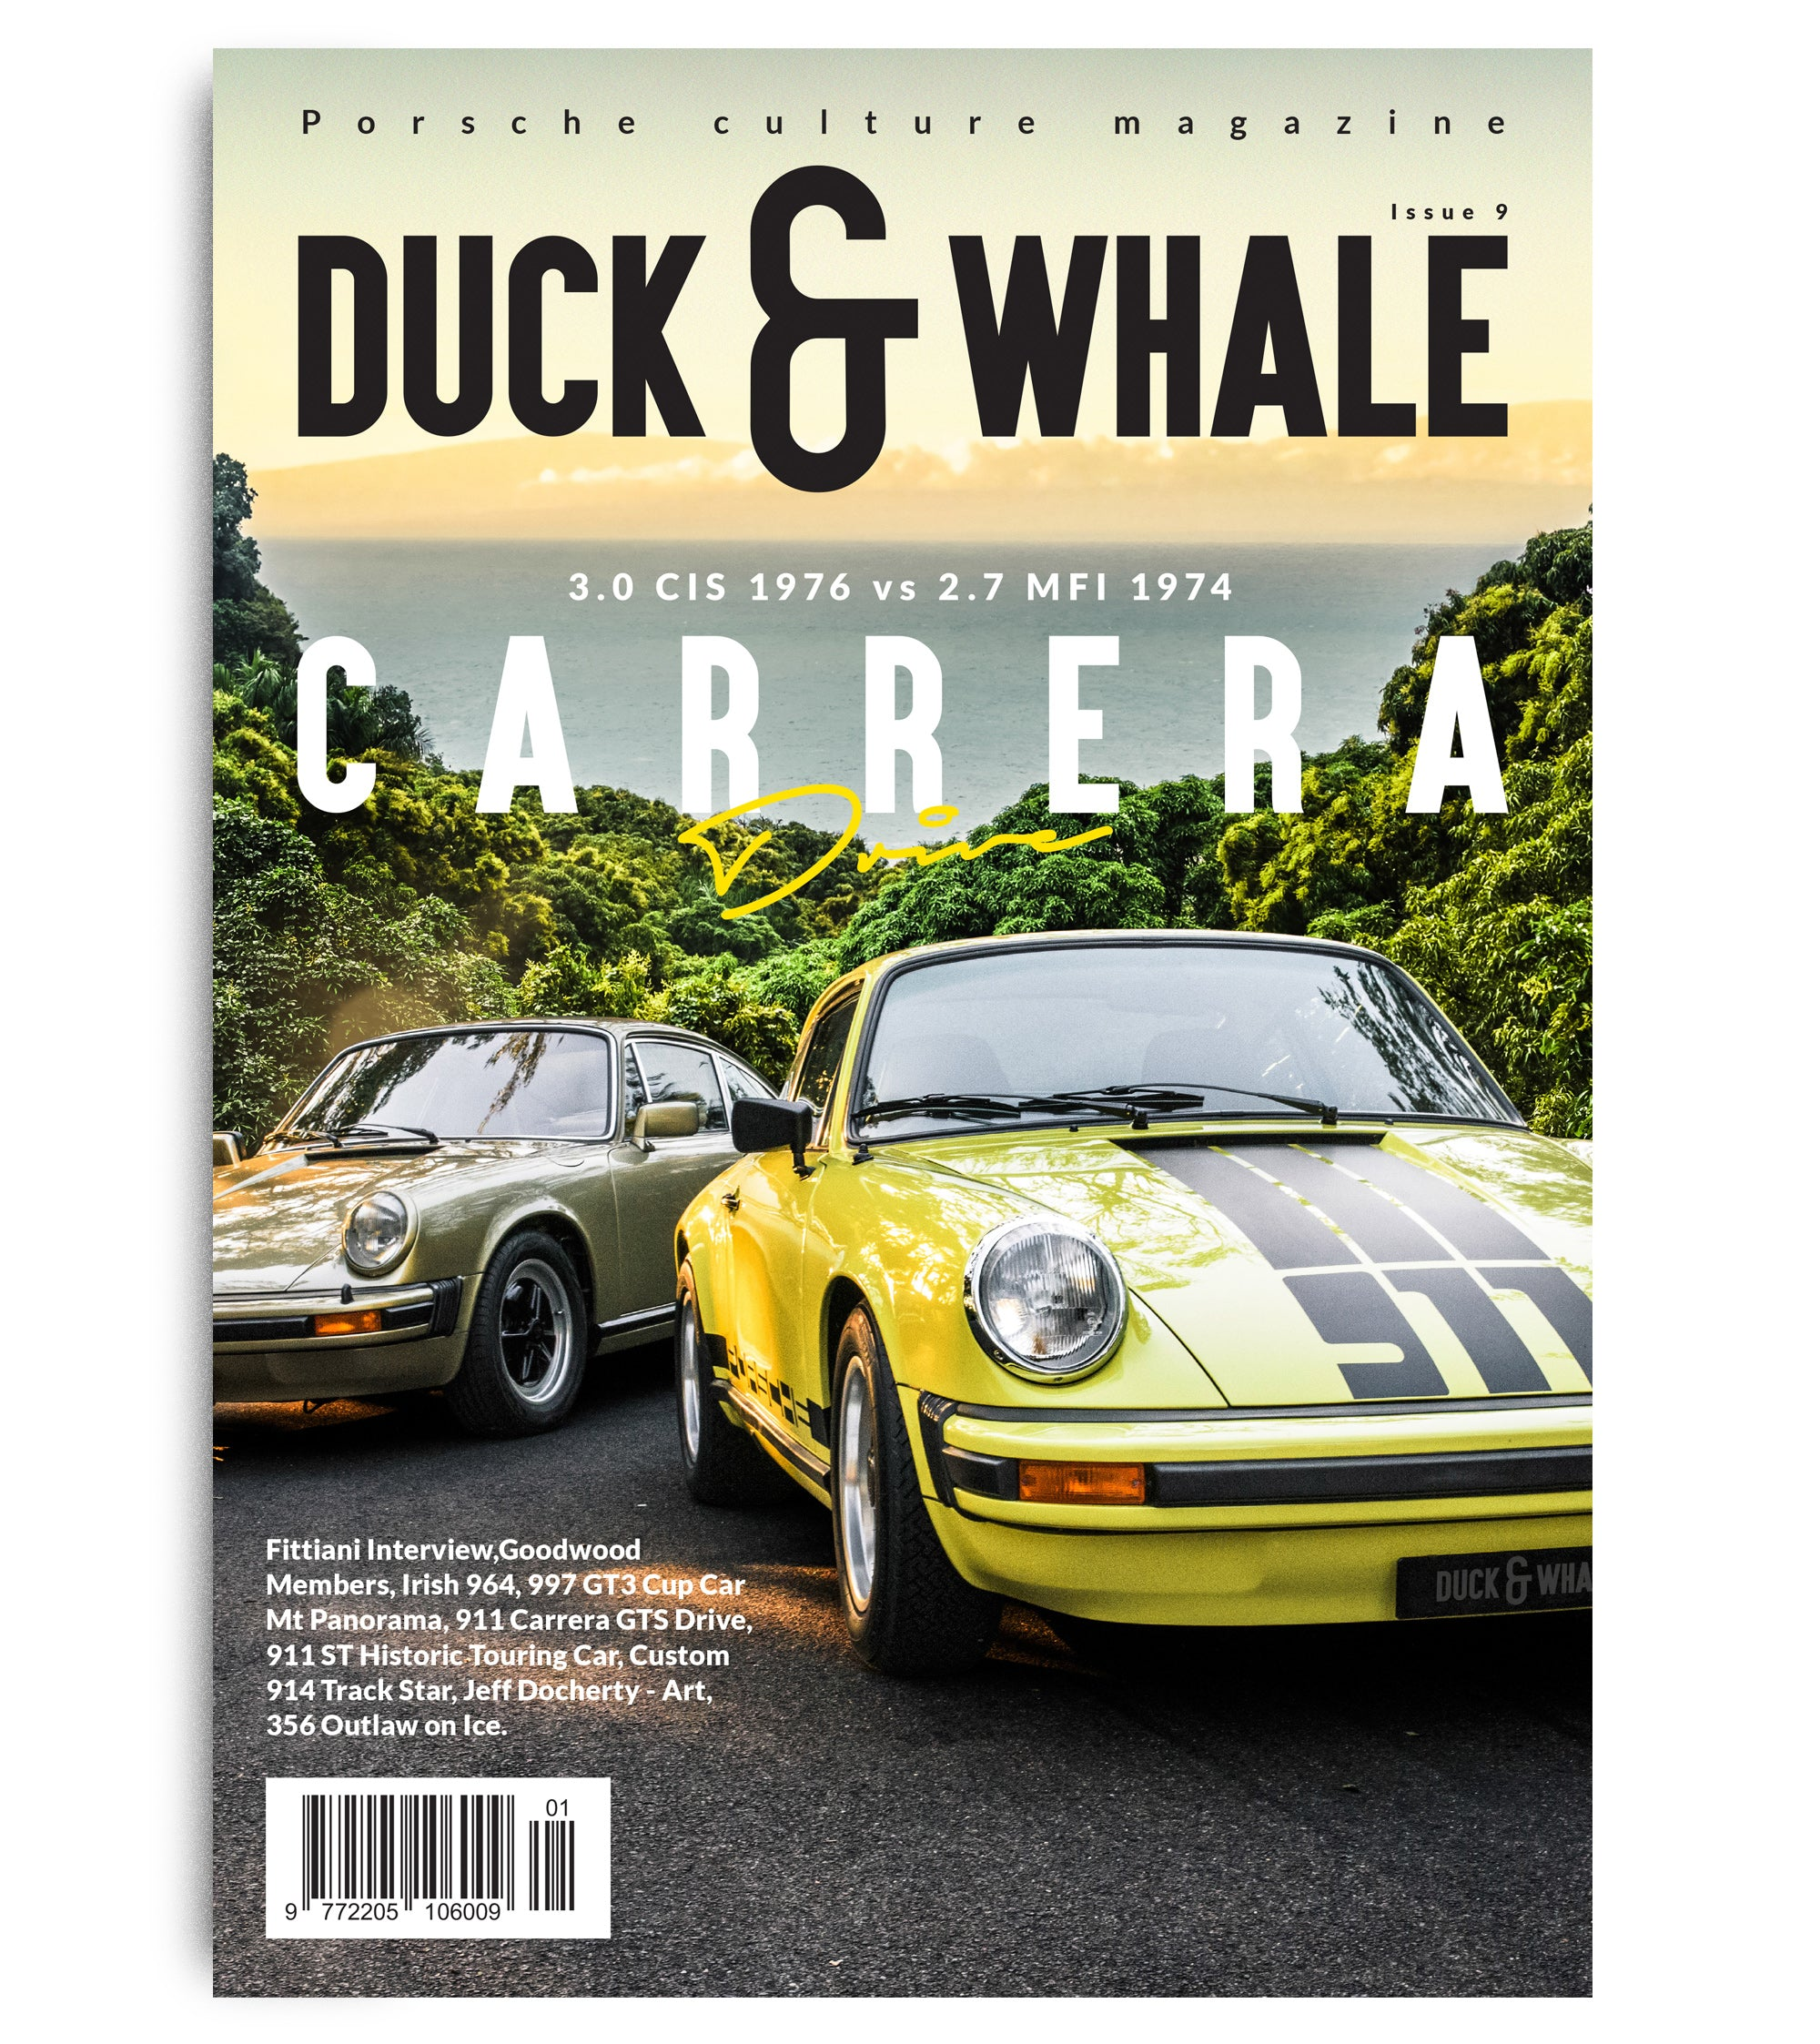 Duck & Whale Issue 9